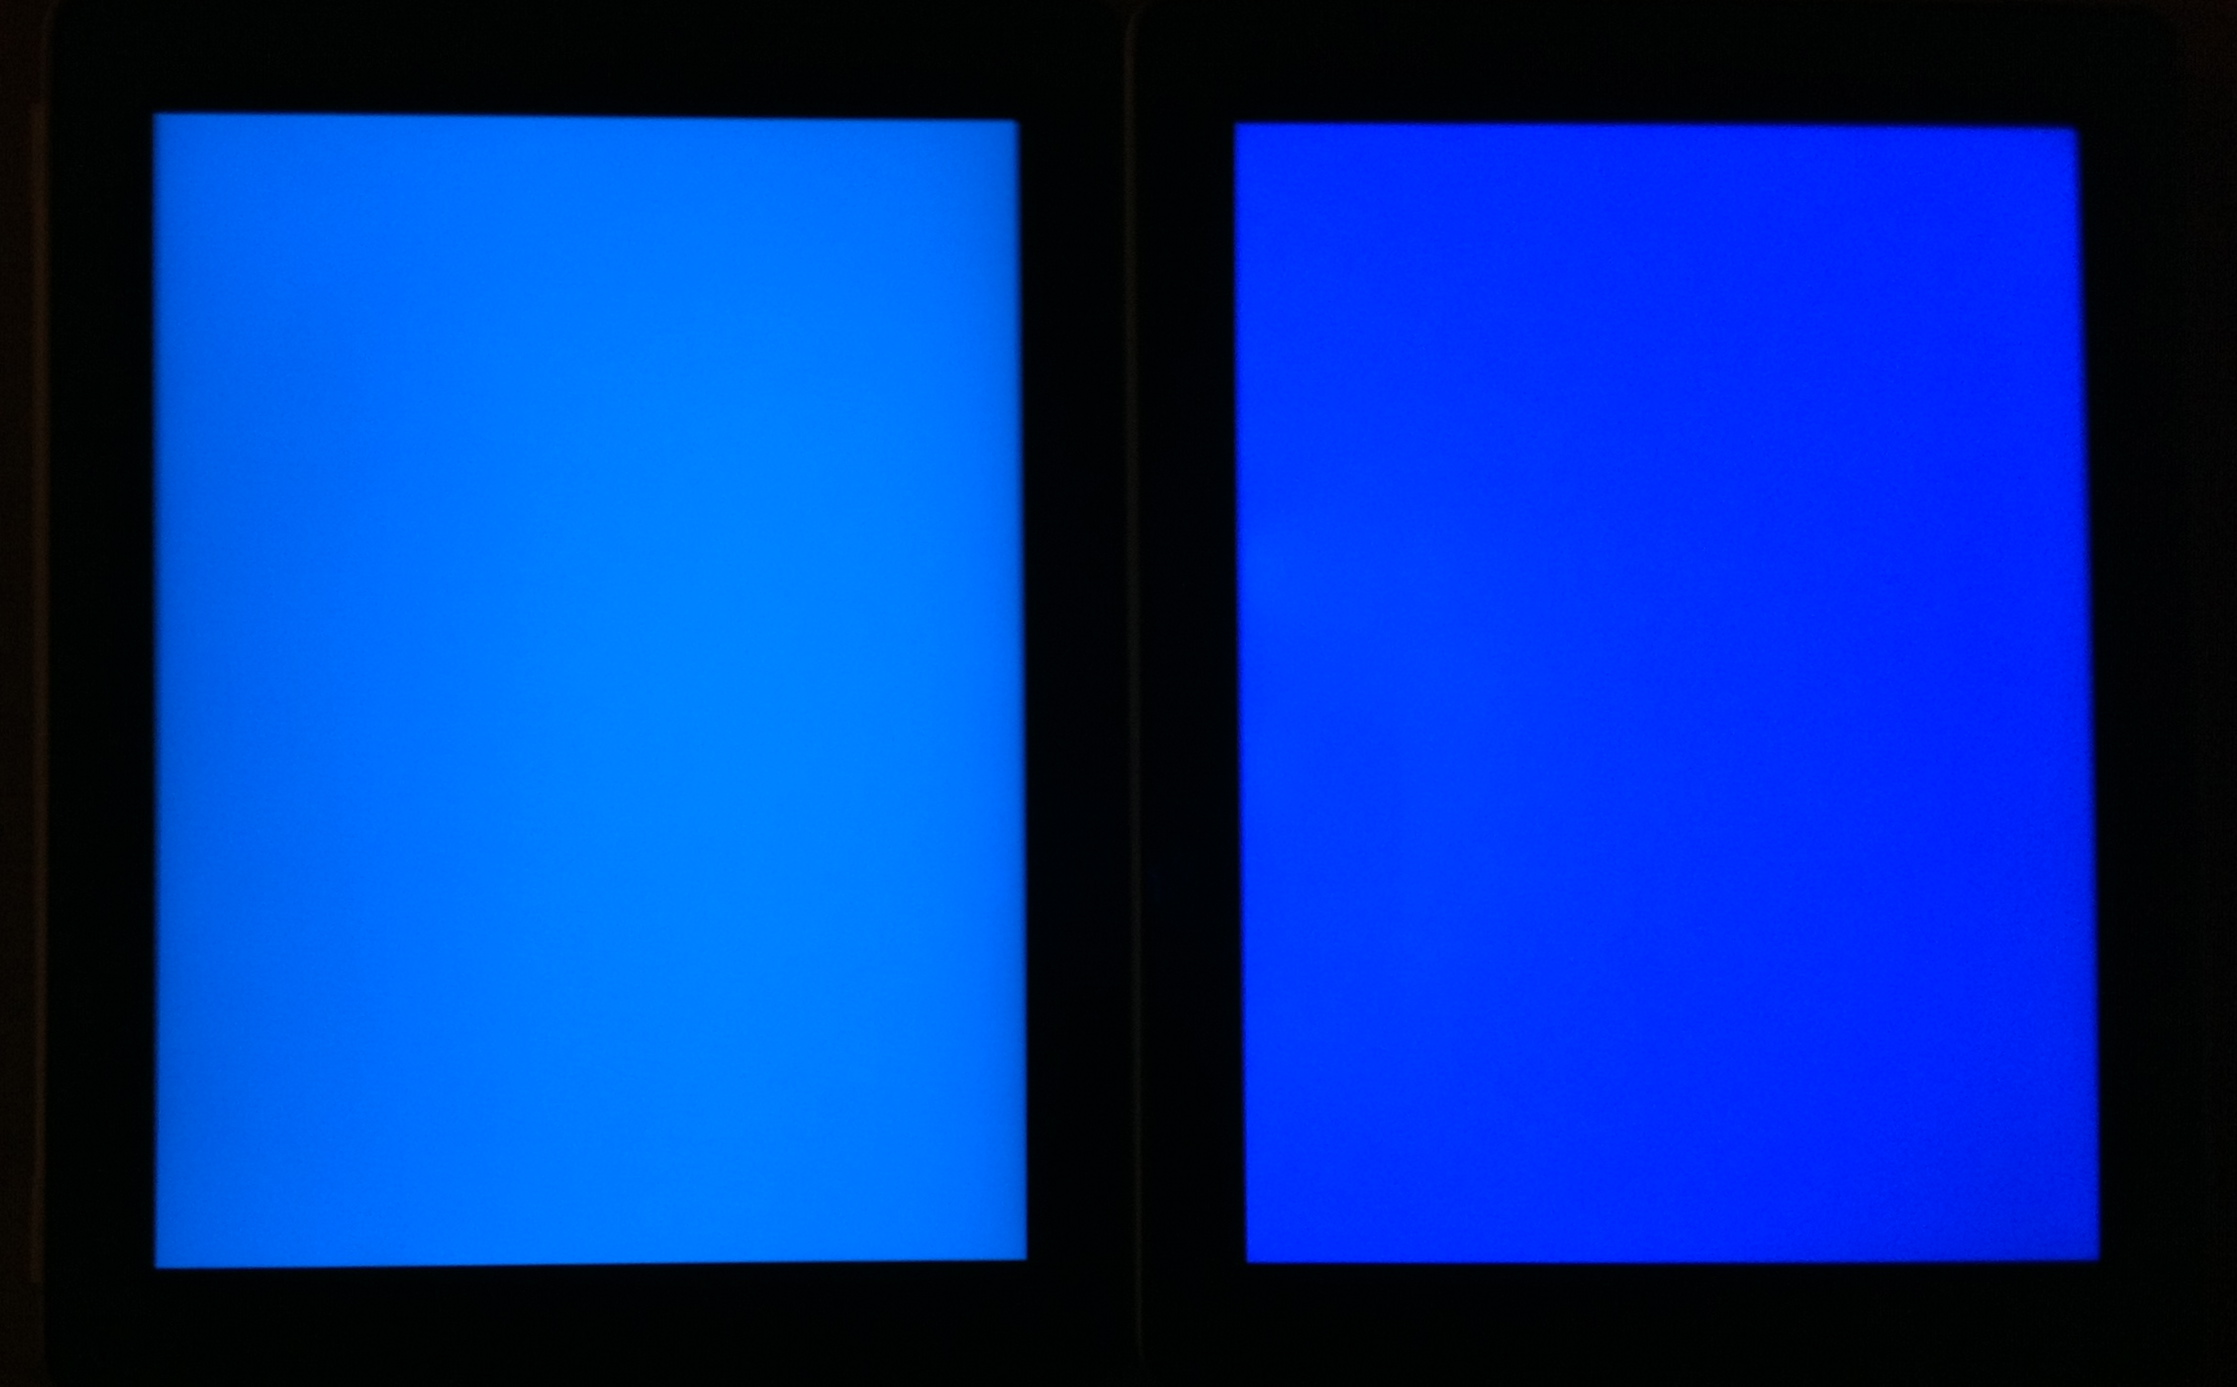 ... new iPad boasts better colors – how did they do it? | dot color